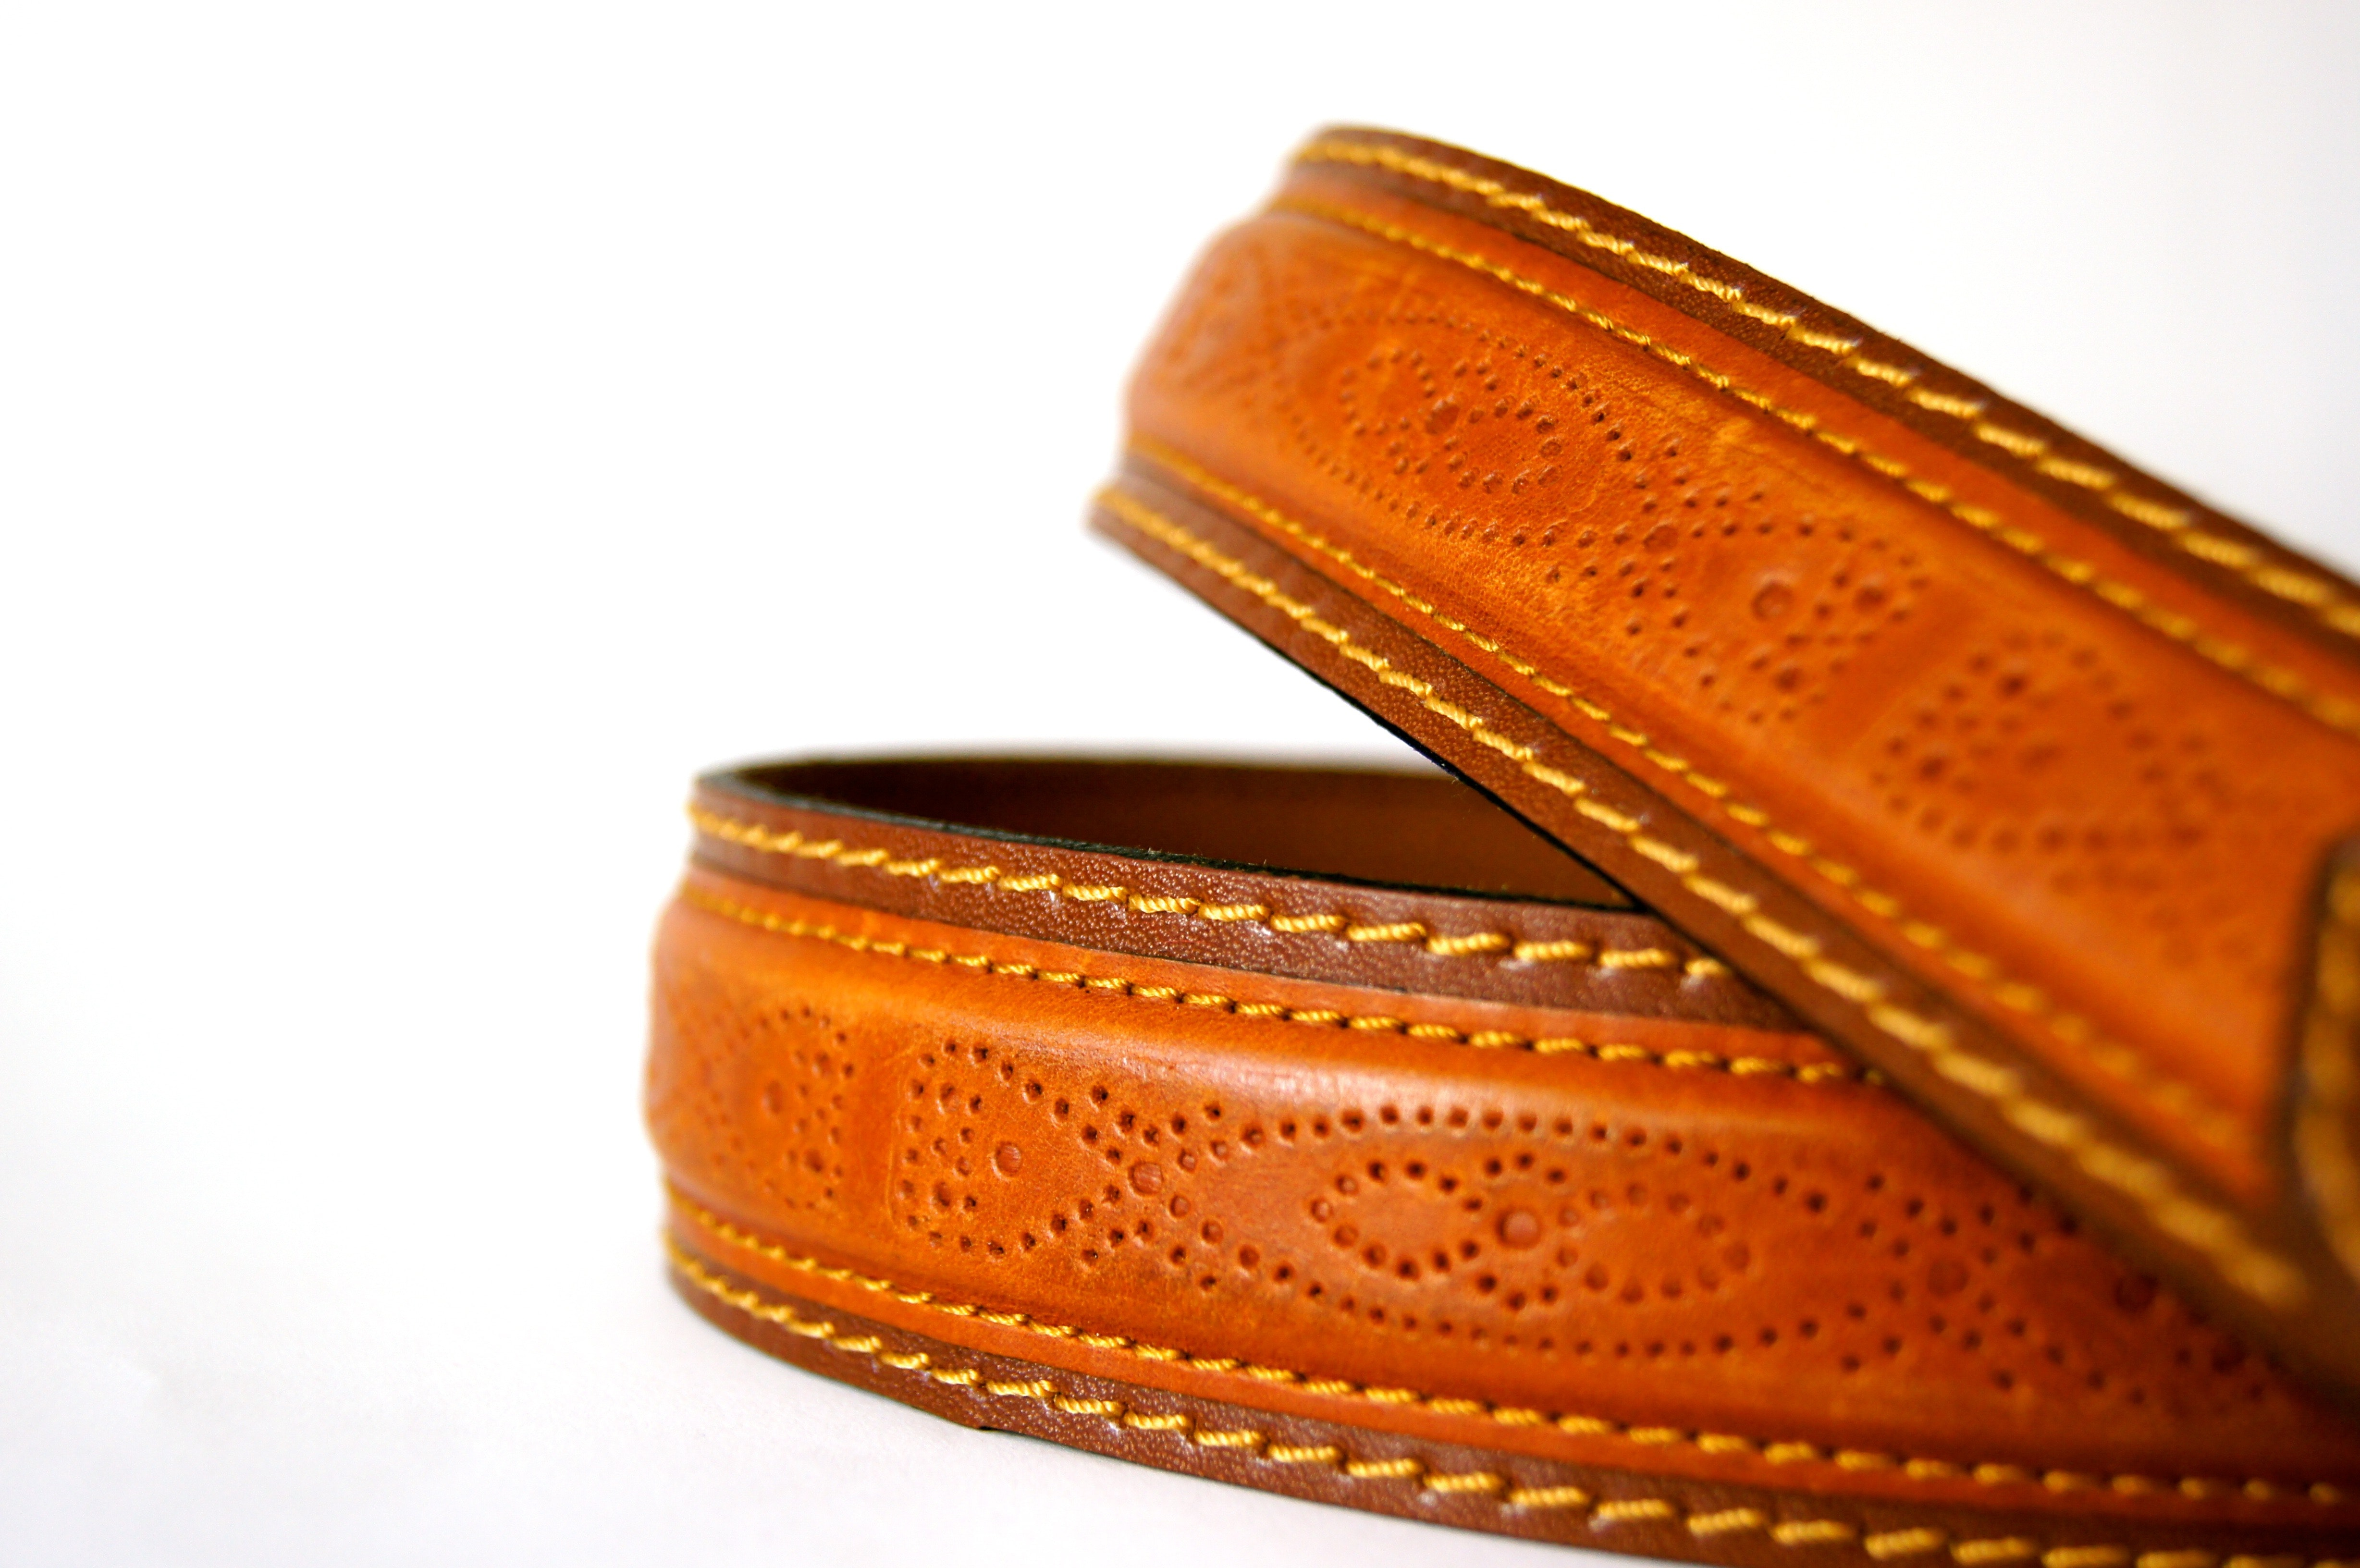 Brown Leather Belt, Belt, Brown, Close-up, Fashion, HQ Photo